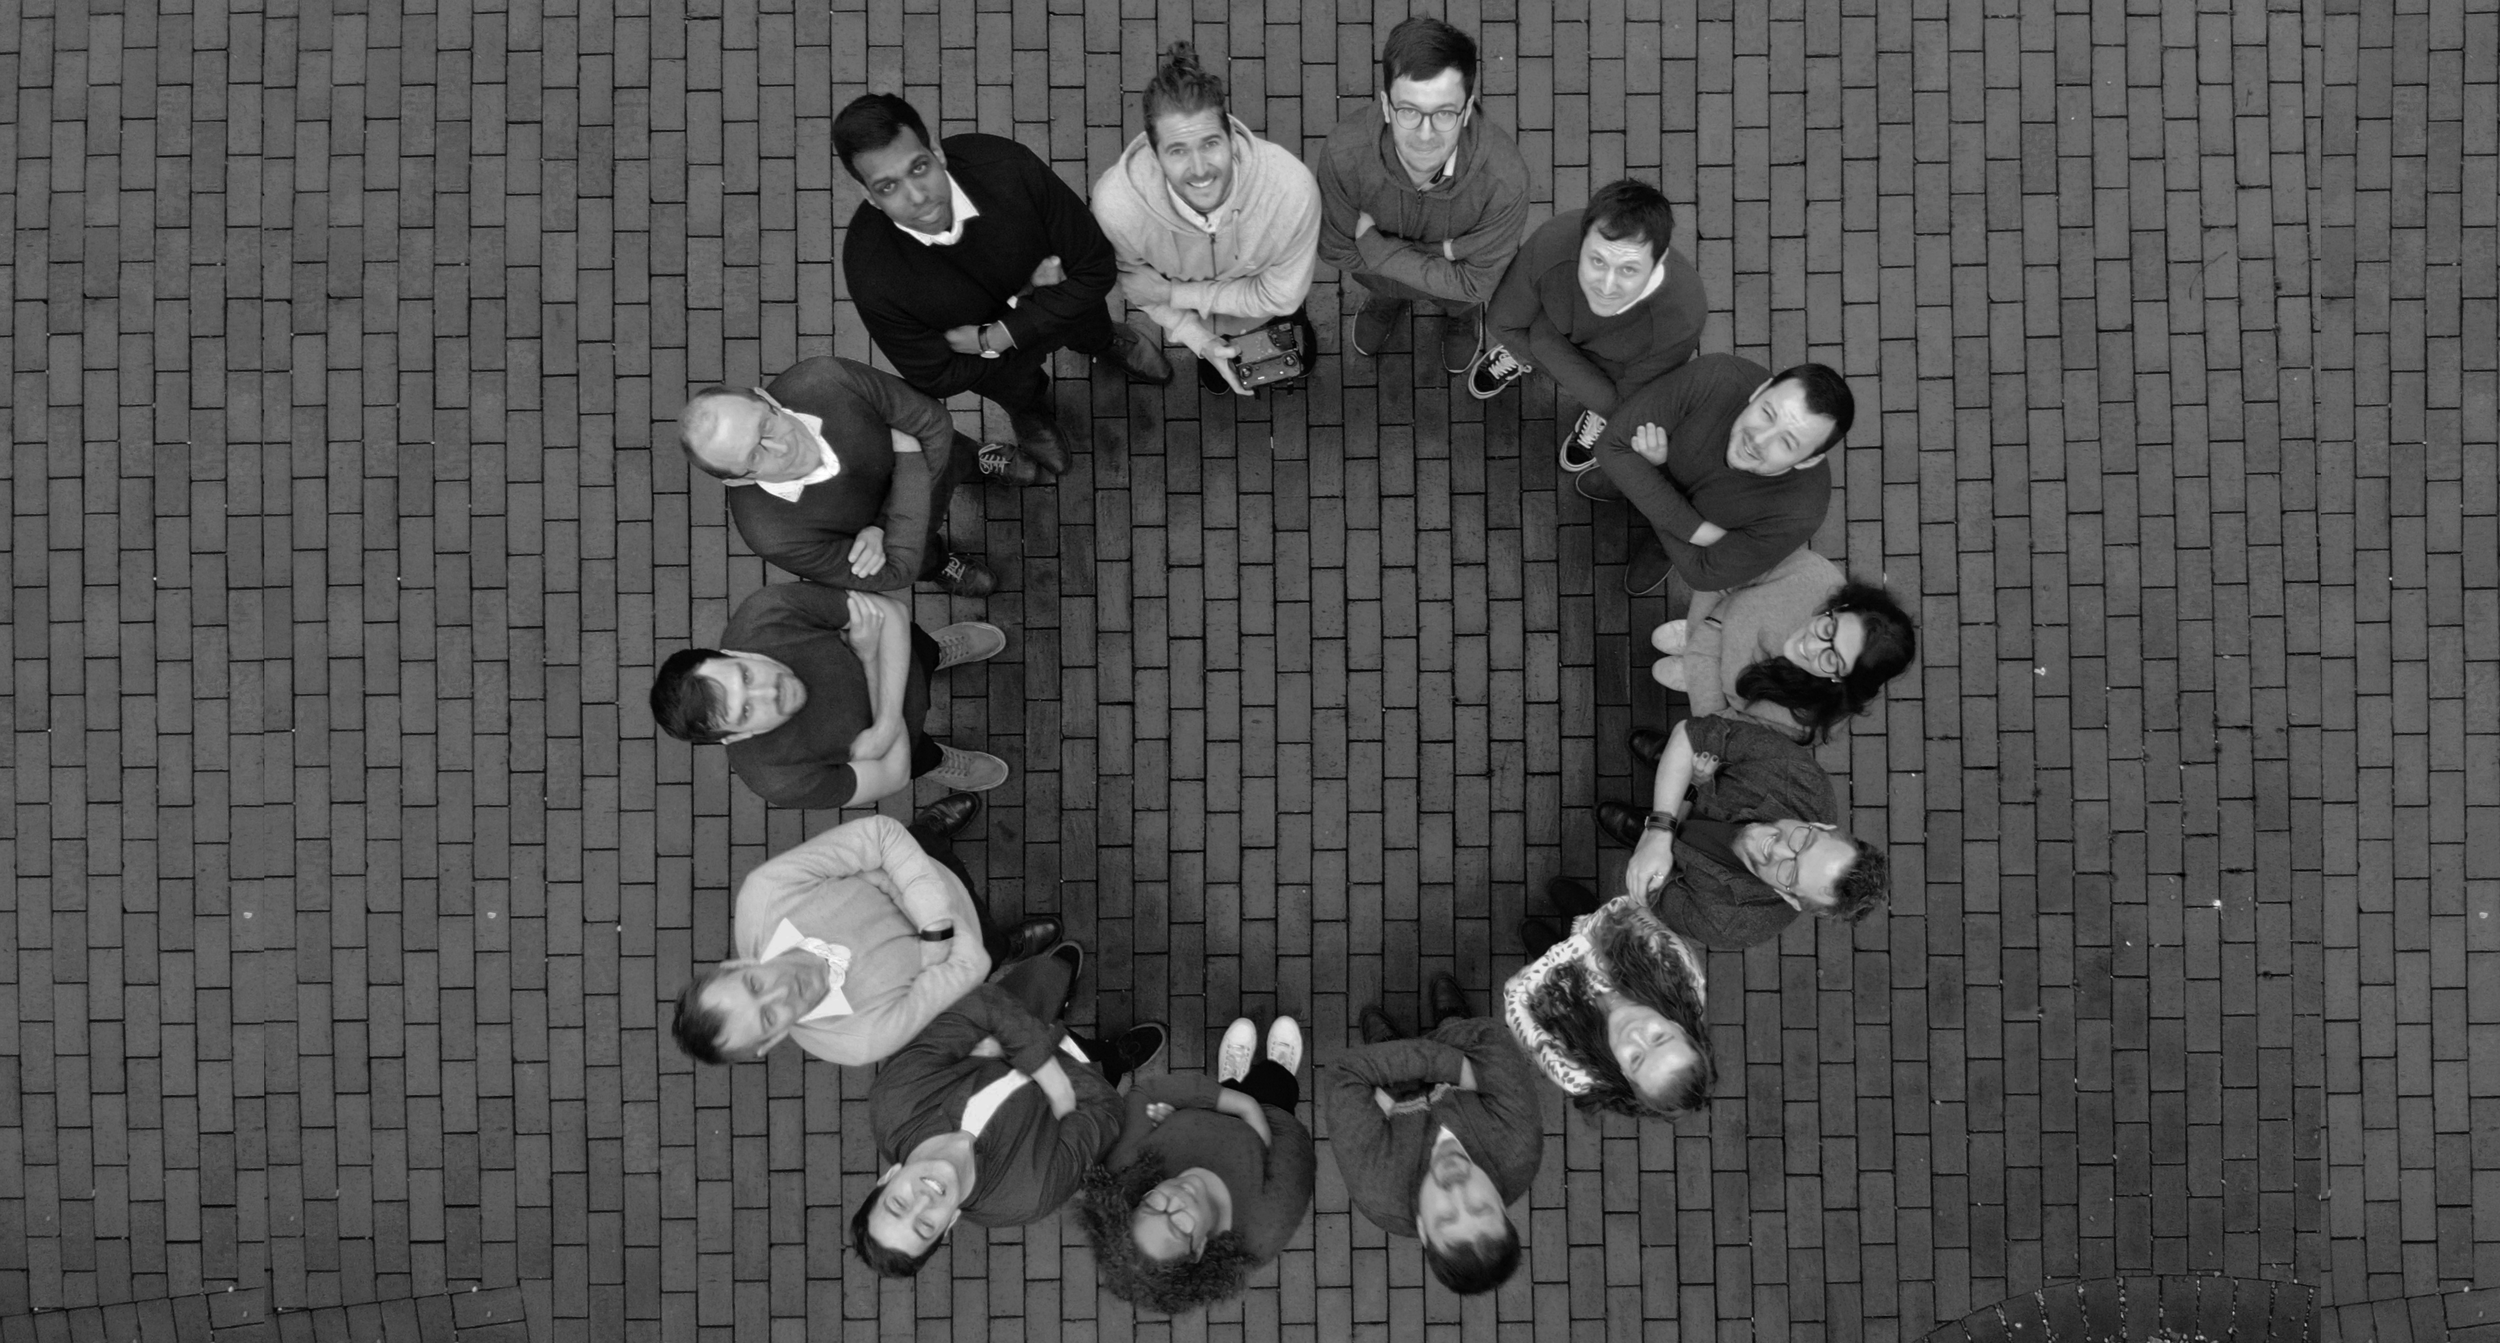 An overhead image showing the WealthKernel team stood in a circle